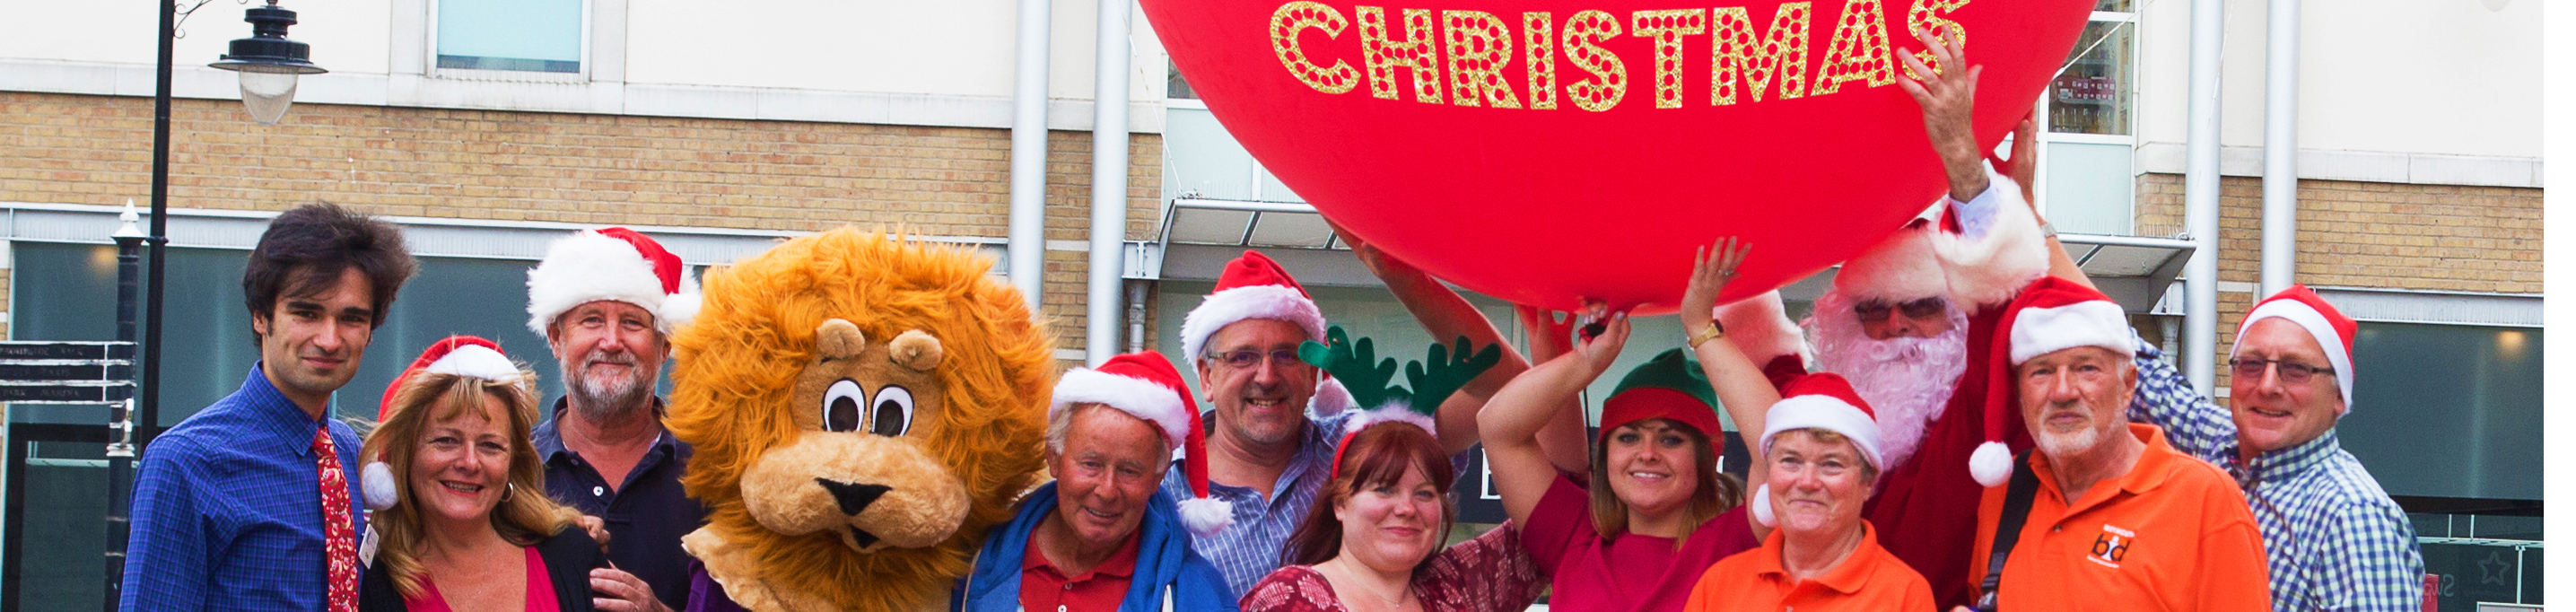 WEYMOUTH'S BIG CHRISTMAS IS COMING TO TOWN – 4th to 31st DECEMBER 2015